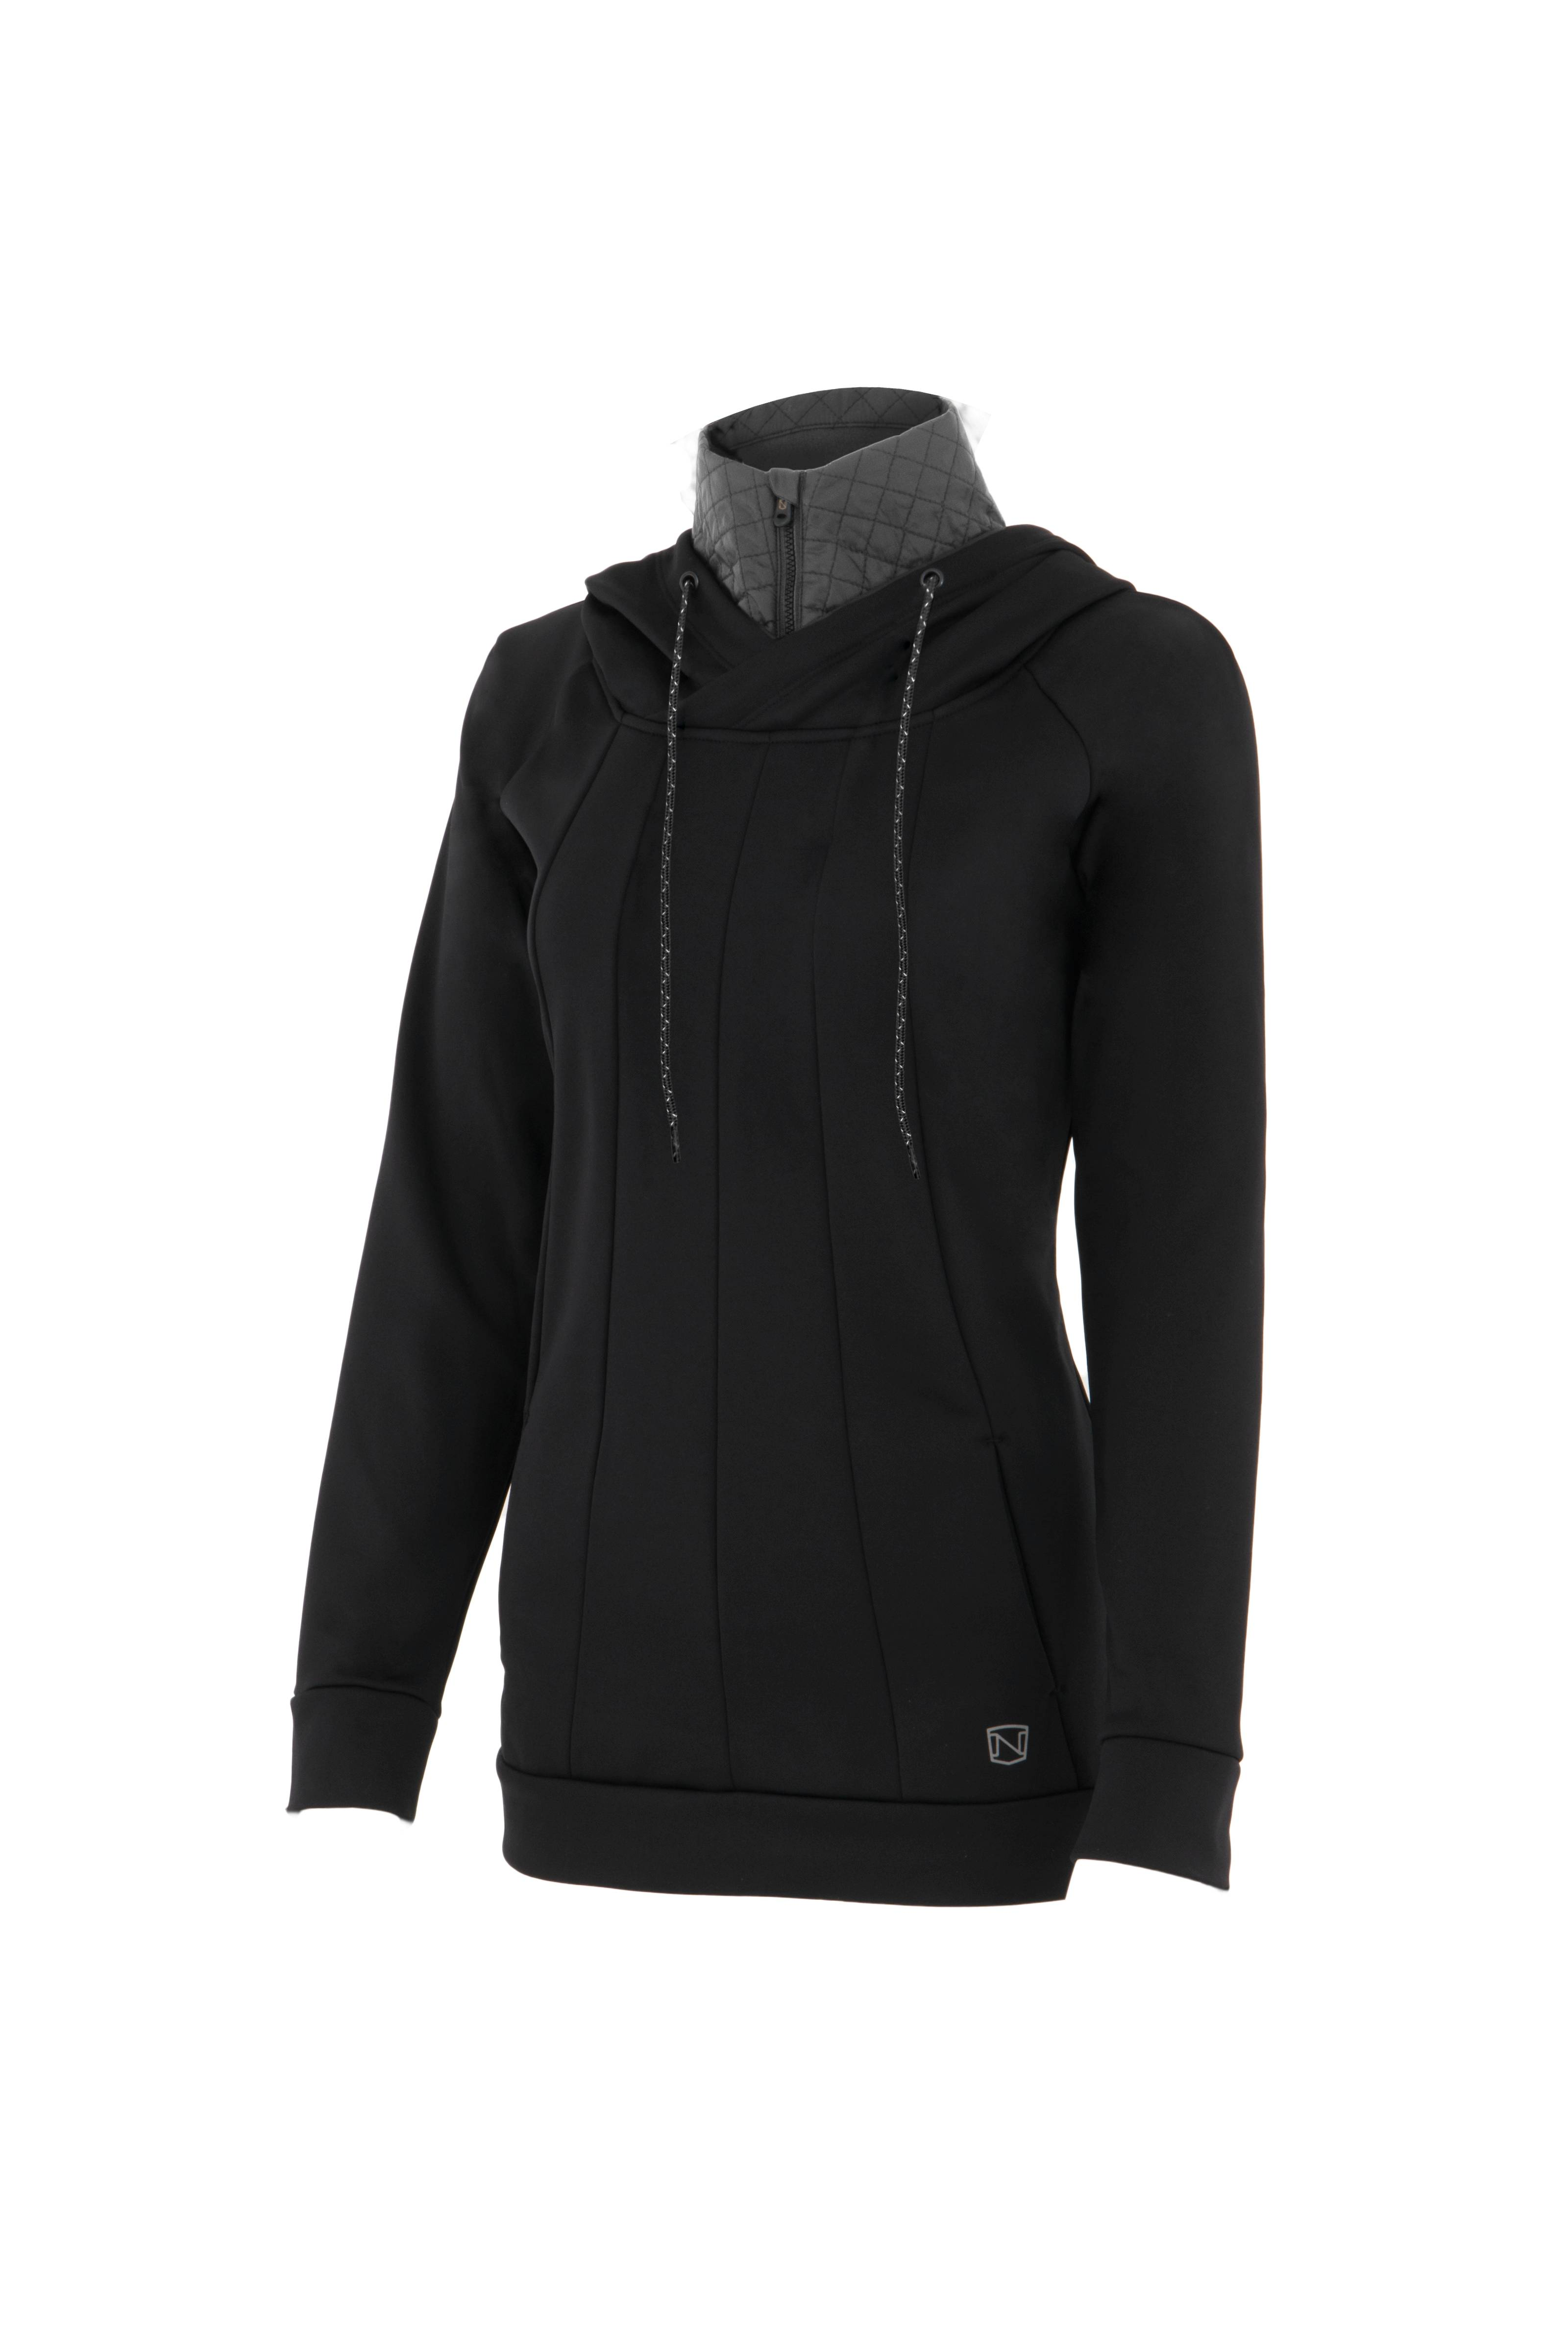 Noble Outfitters Warmwear 1/4 Zip Hoodie